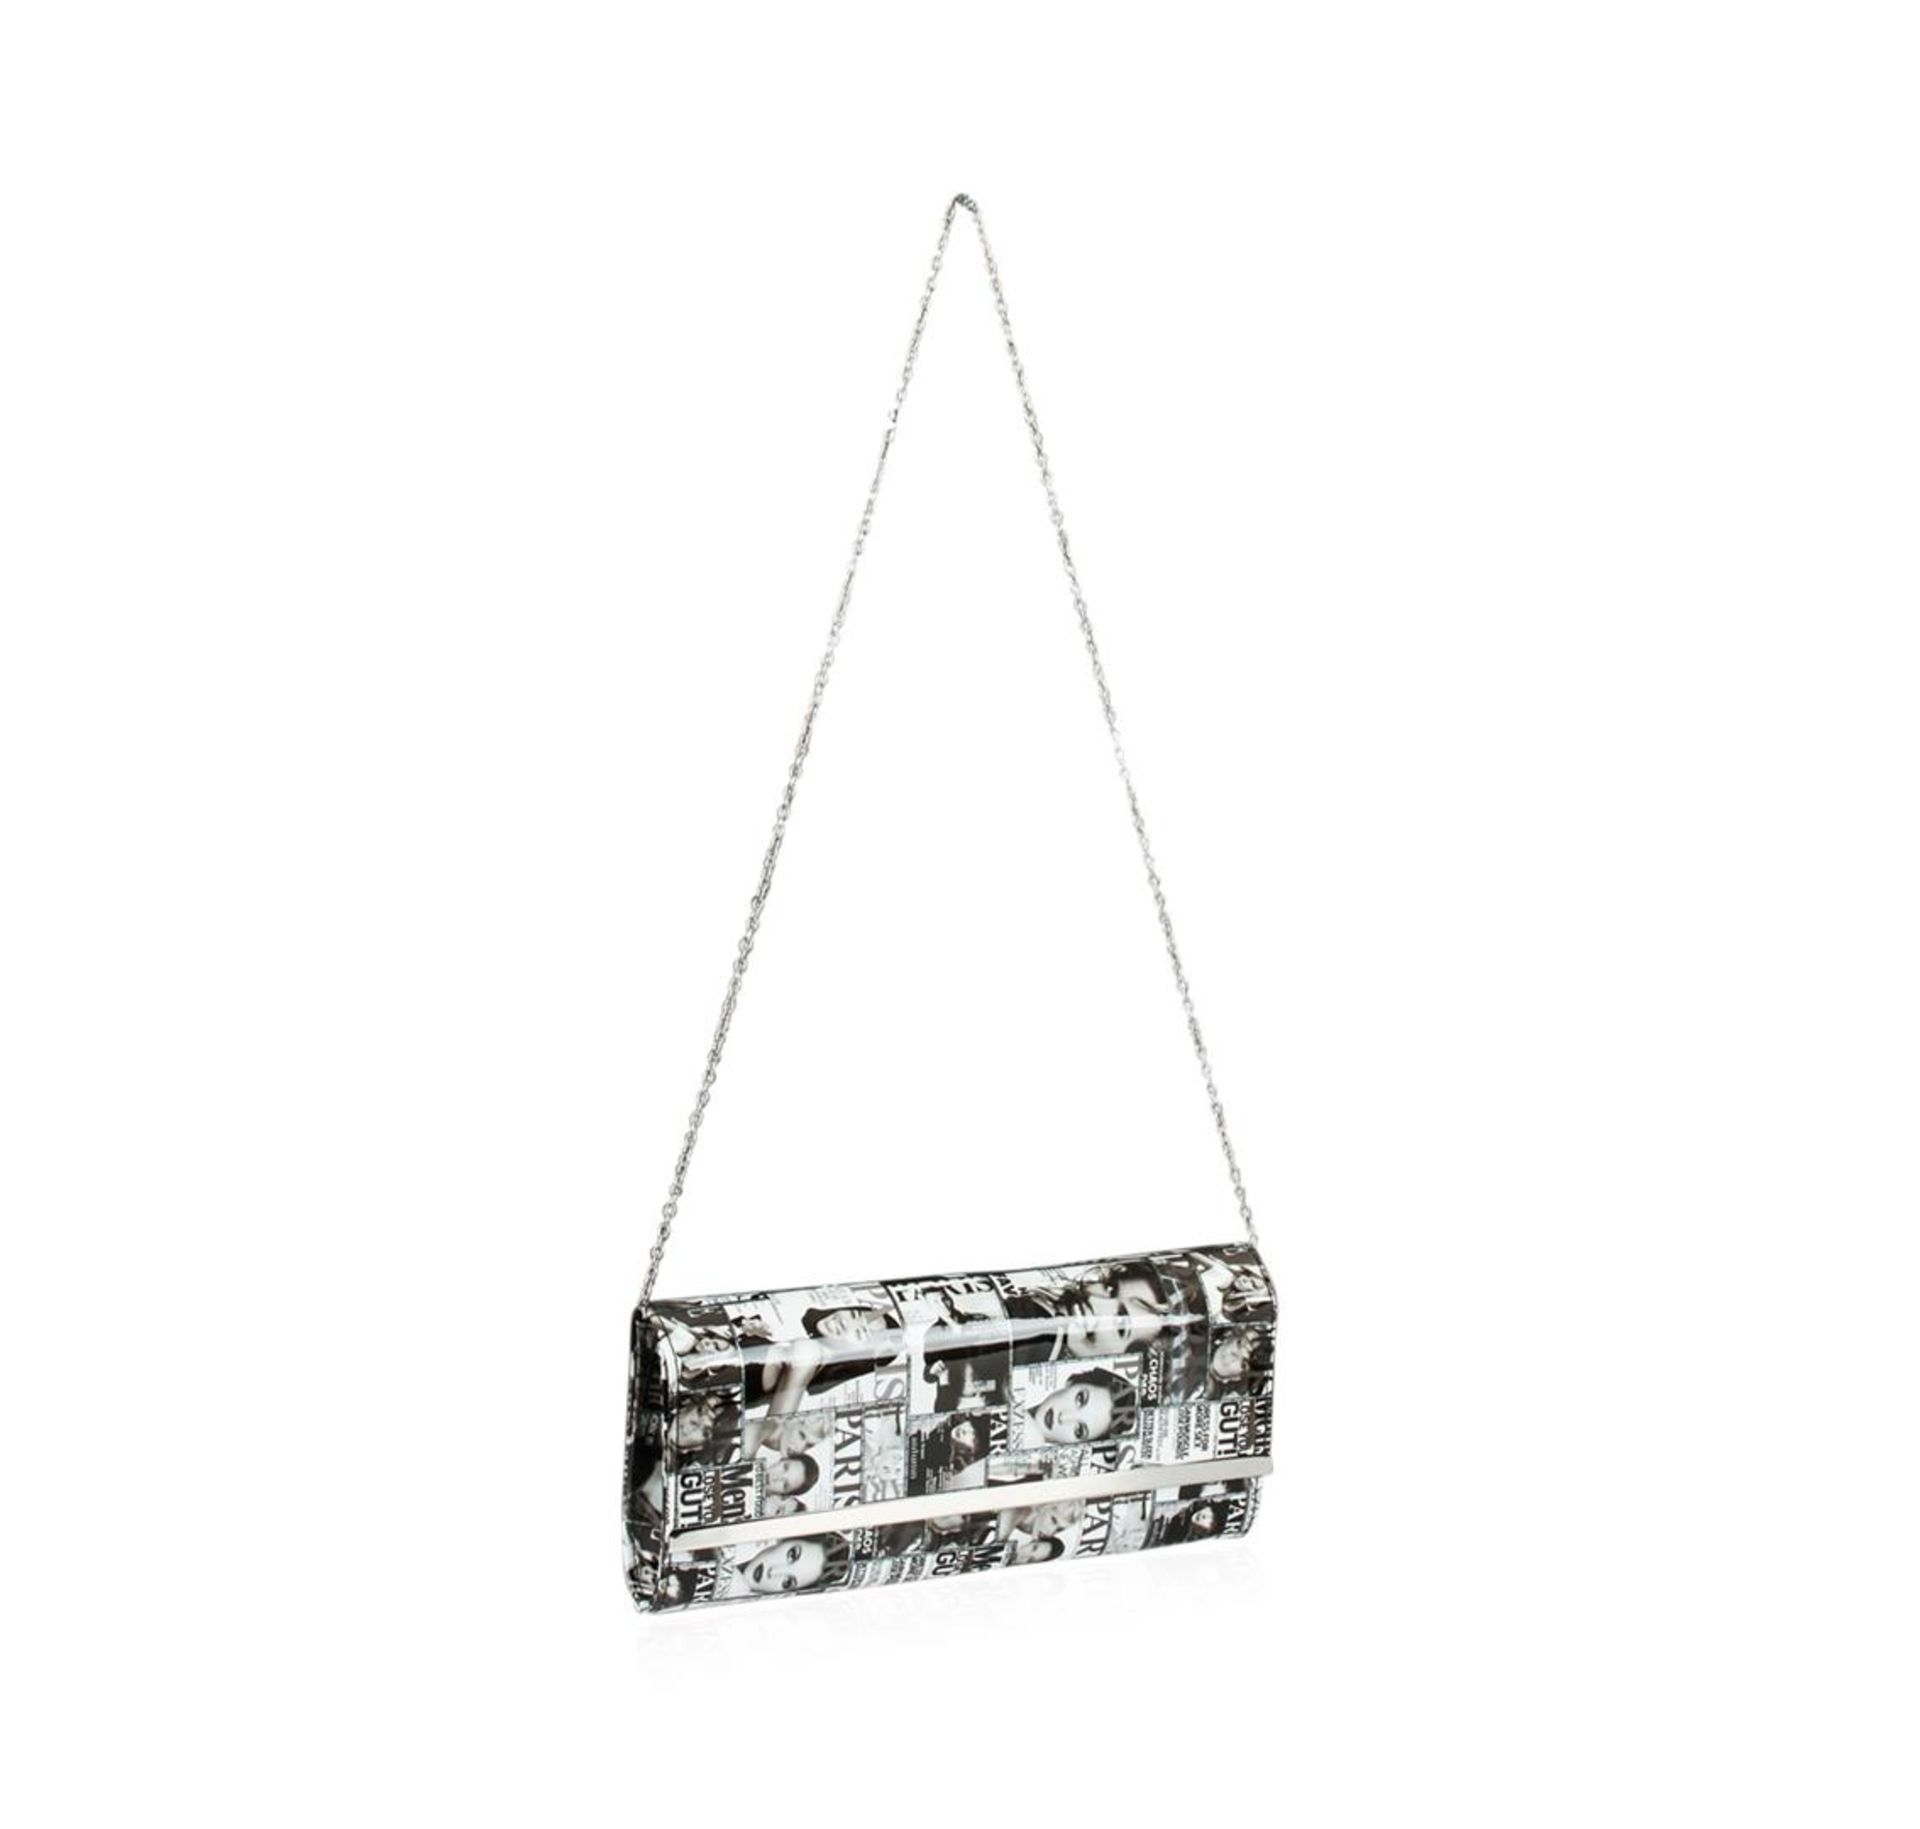 Black and White Fashionista Patent Oversized Clutch - Image 3 of 3